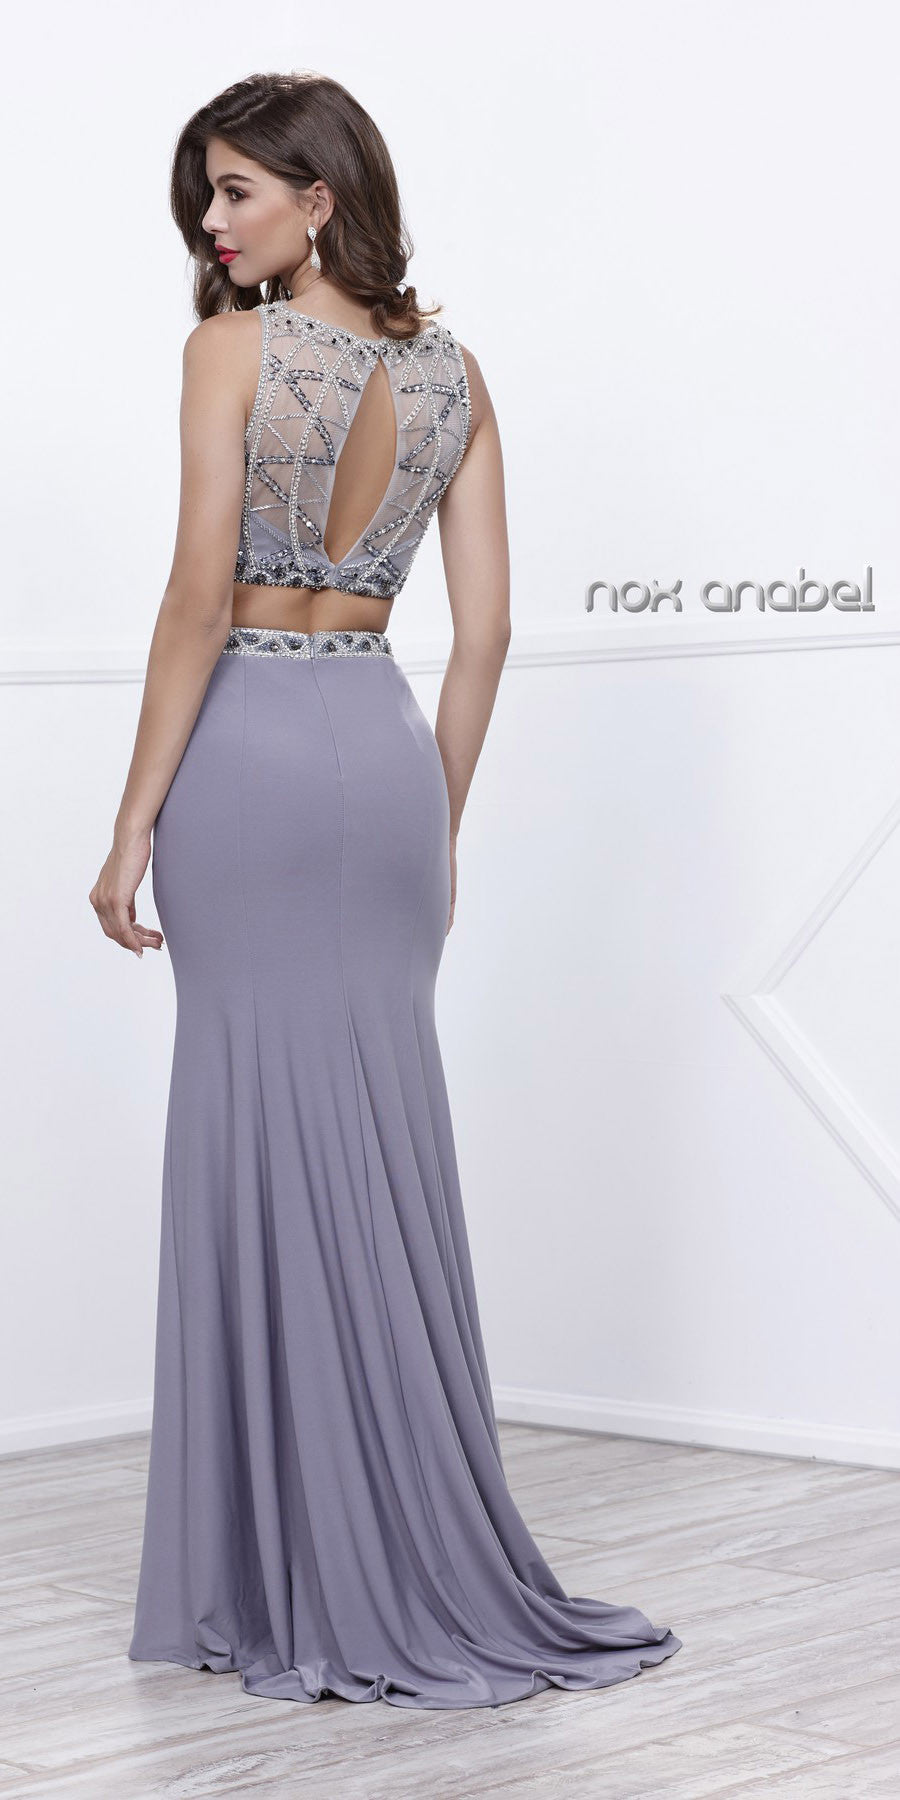 Gray Two-Piece Fit and Flare Embellished Illusion Top Prom Gown